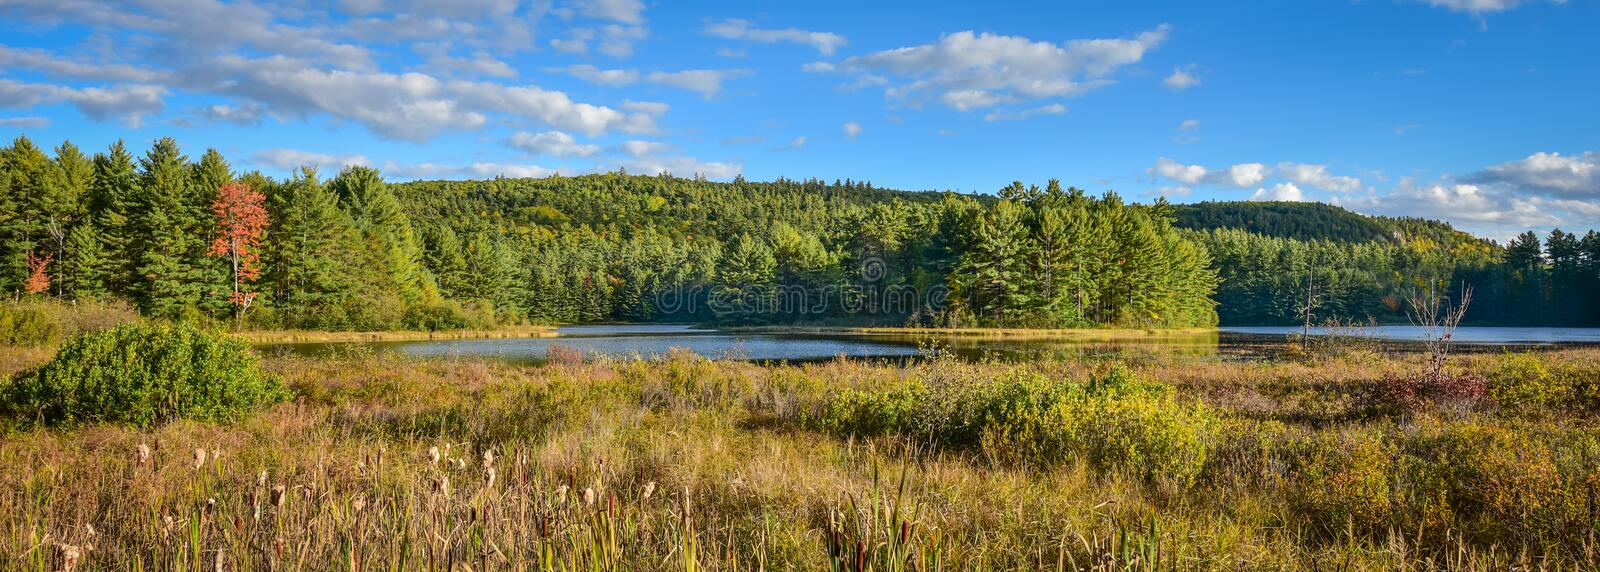 Sunny roadside view of marsh and woodland wilderness country. Warm summer day in boreal forest wilderness in Ontario Canada. stock photo